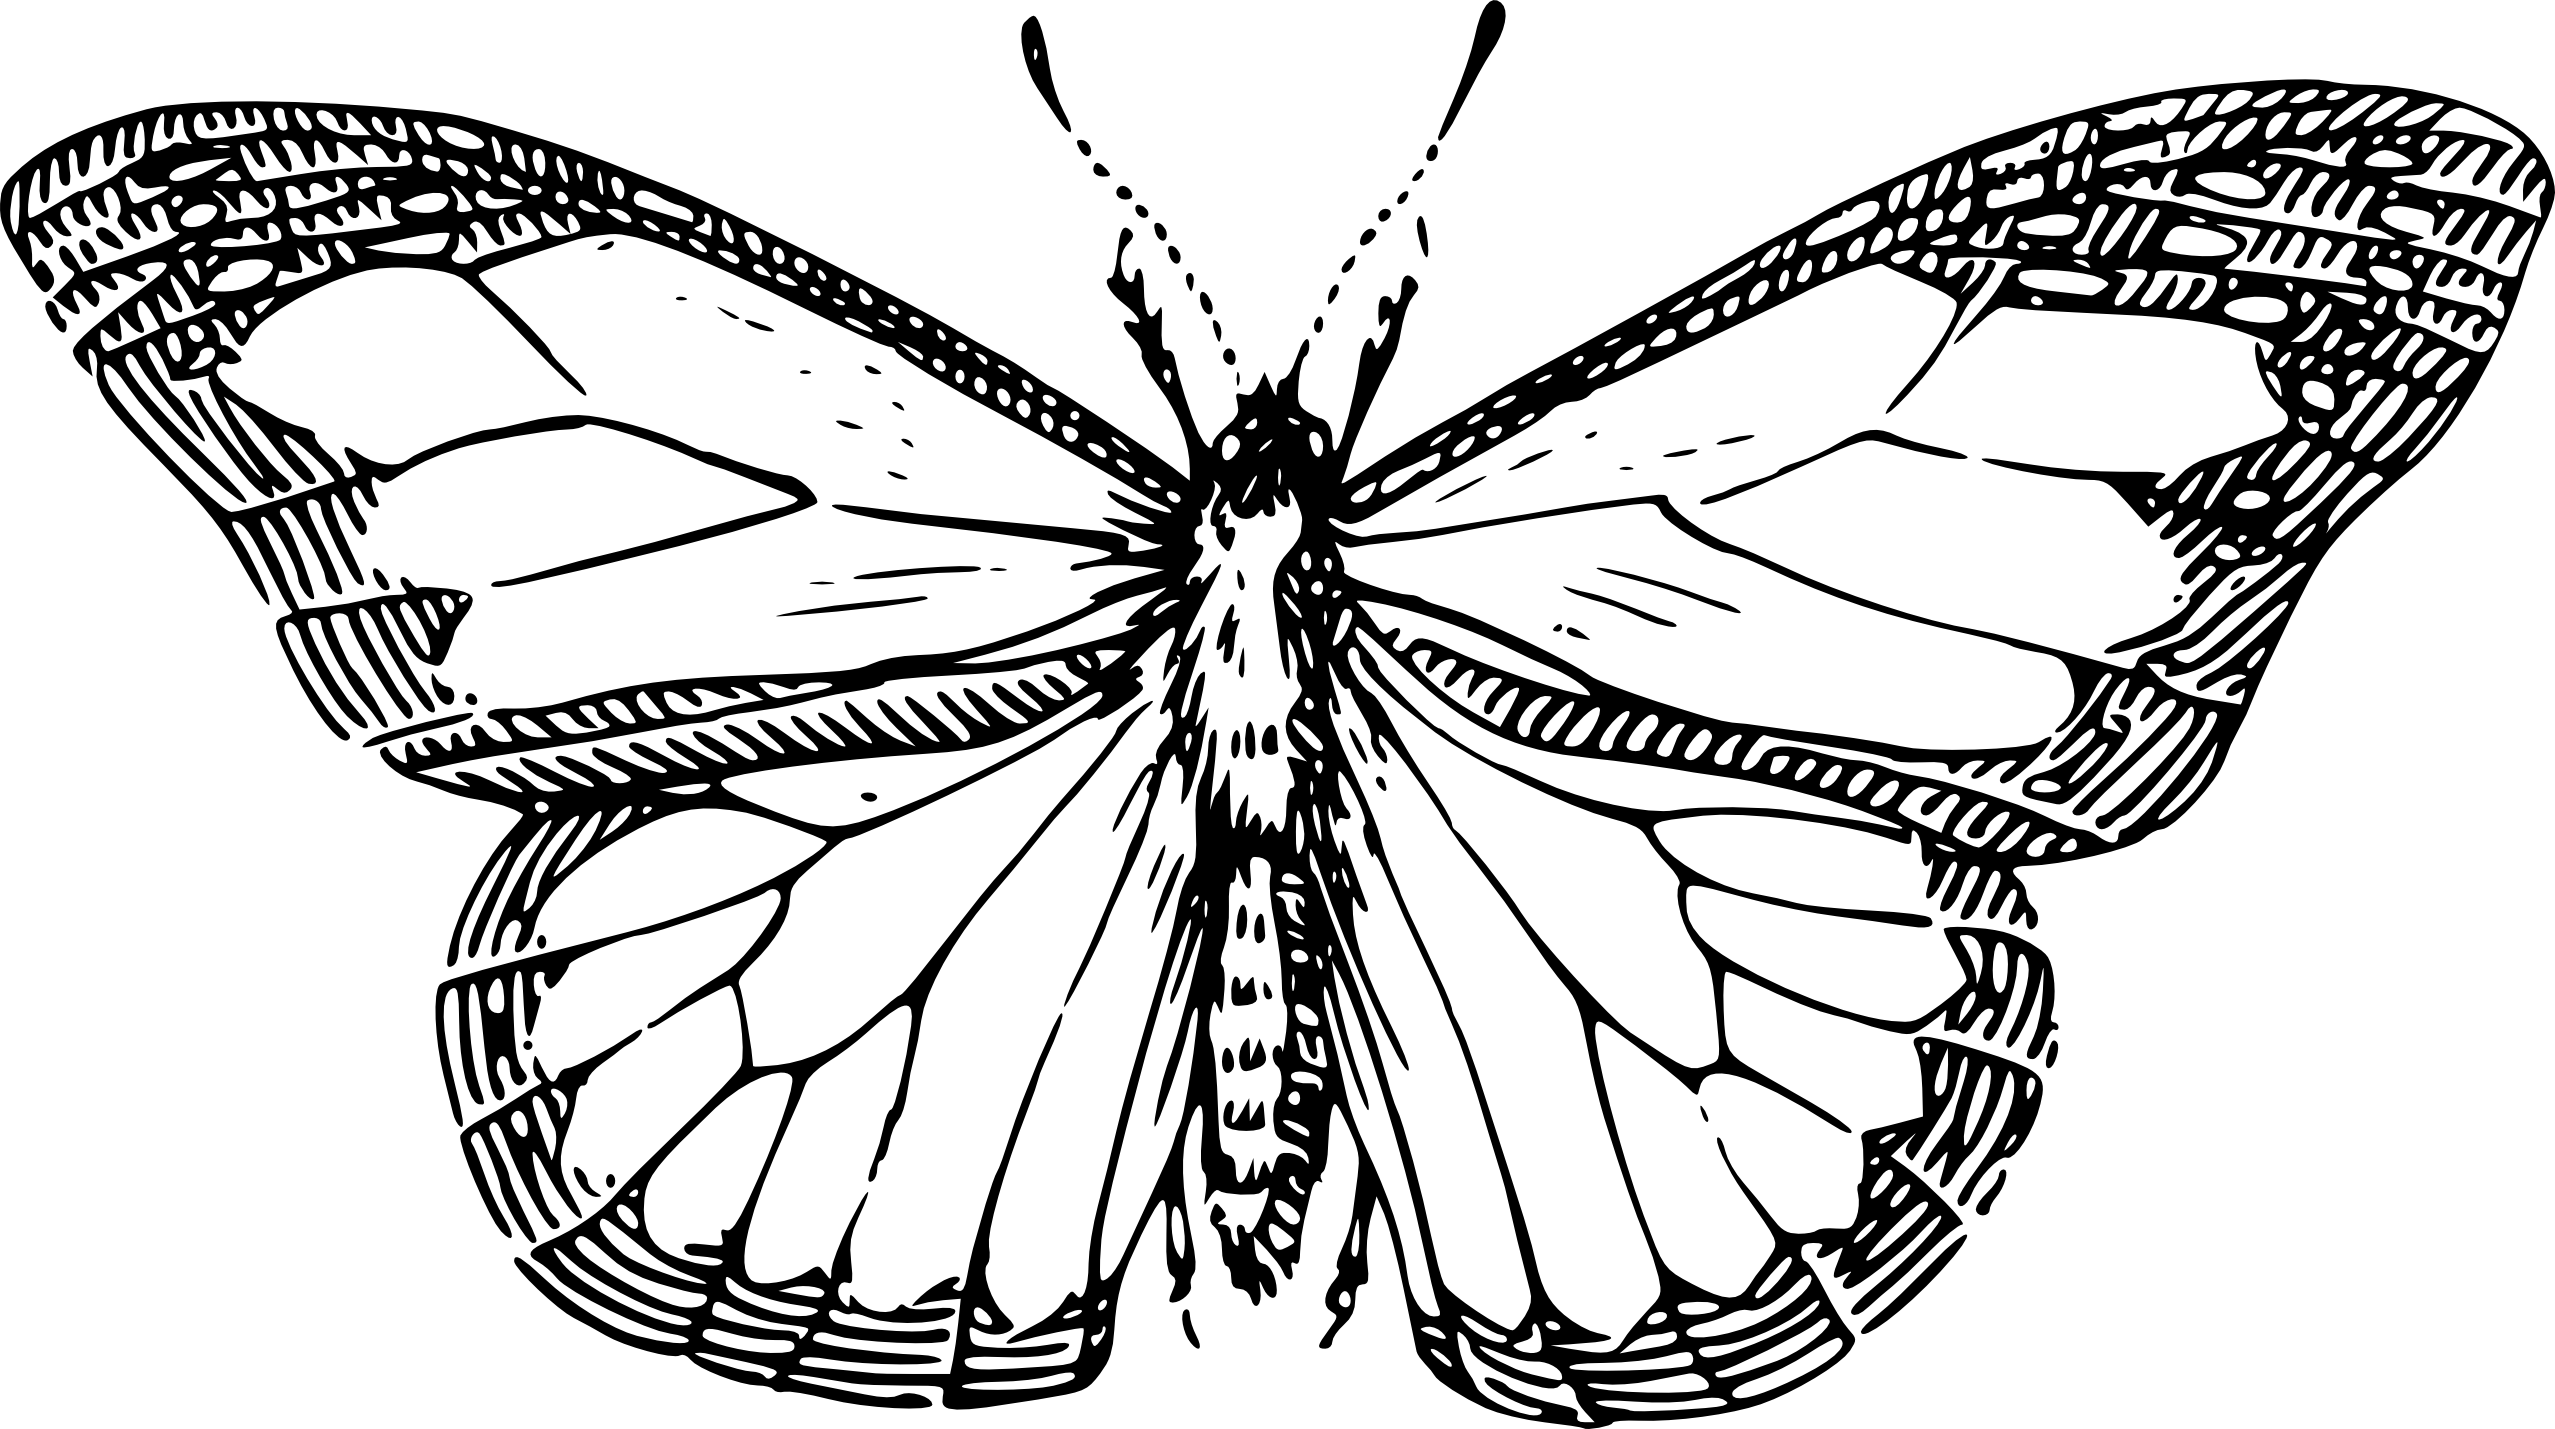 Best butterfly clipart black and white 15170 clipartion